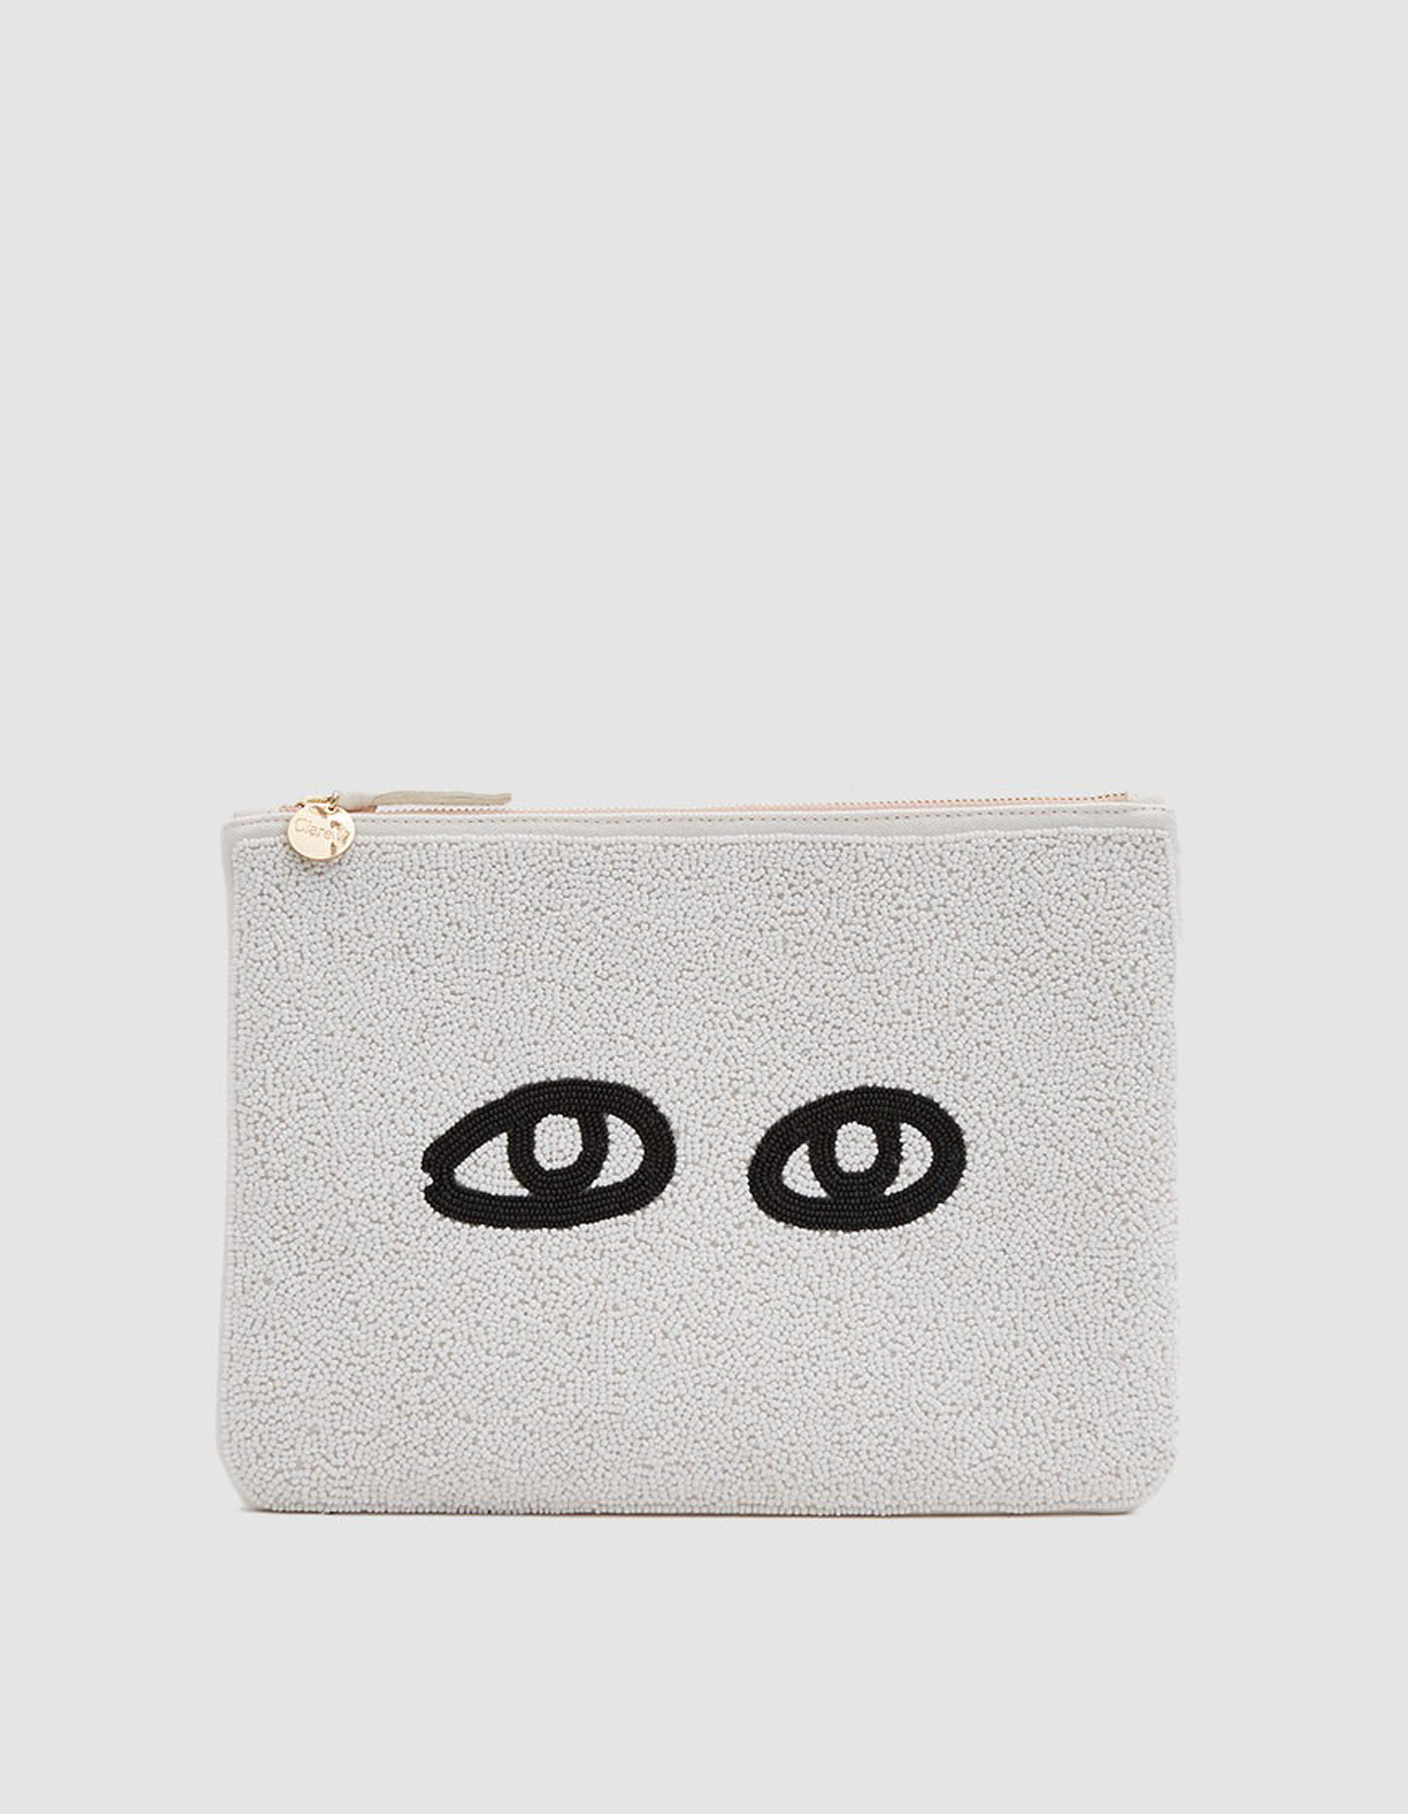 claire v. beaded eye clutch | @themissprints